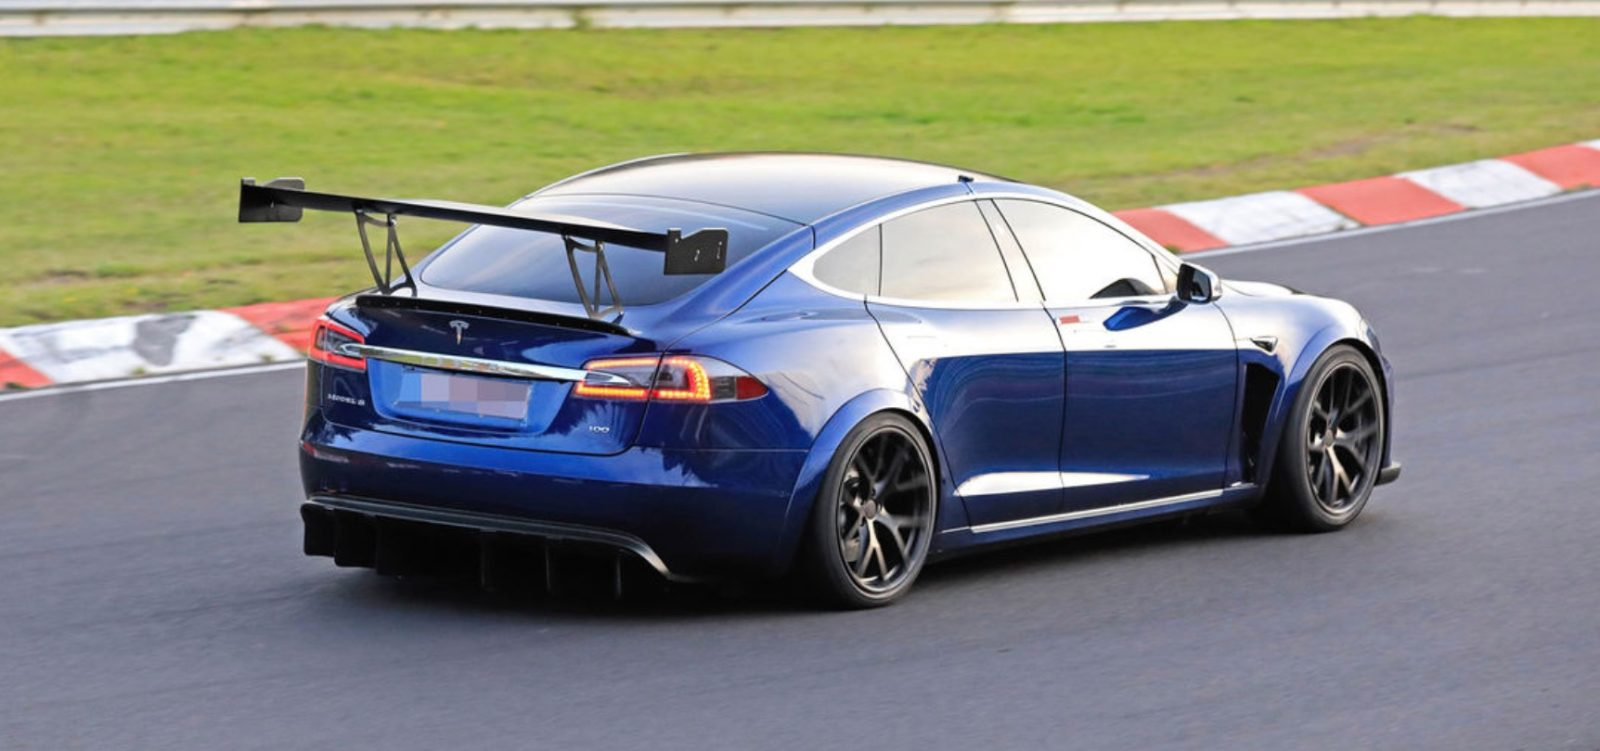 Tesla Model S Plaid prototype reportedly crashed on race track, new spoiler spotted